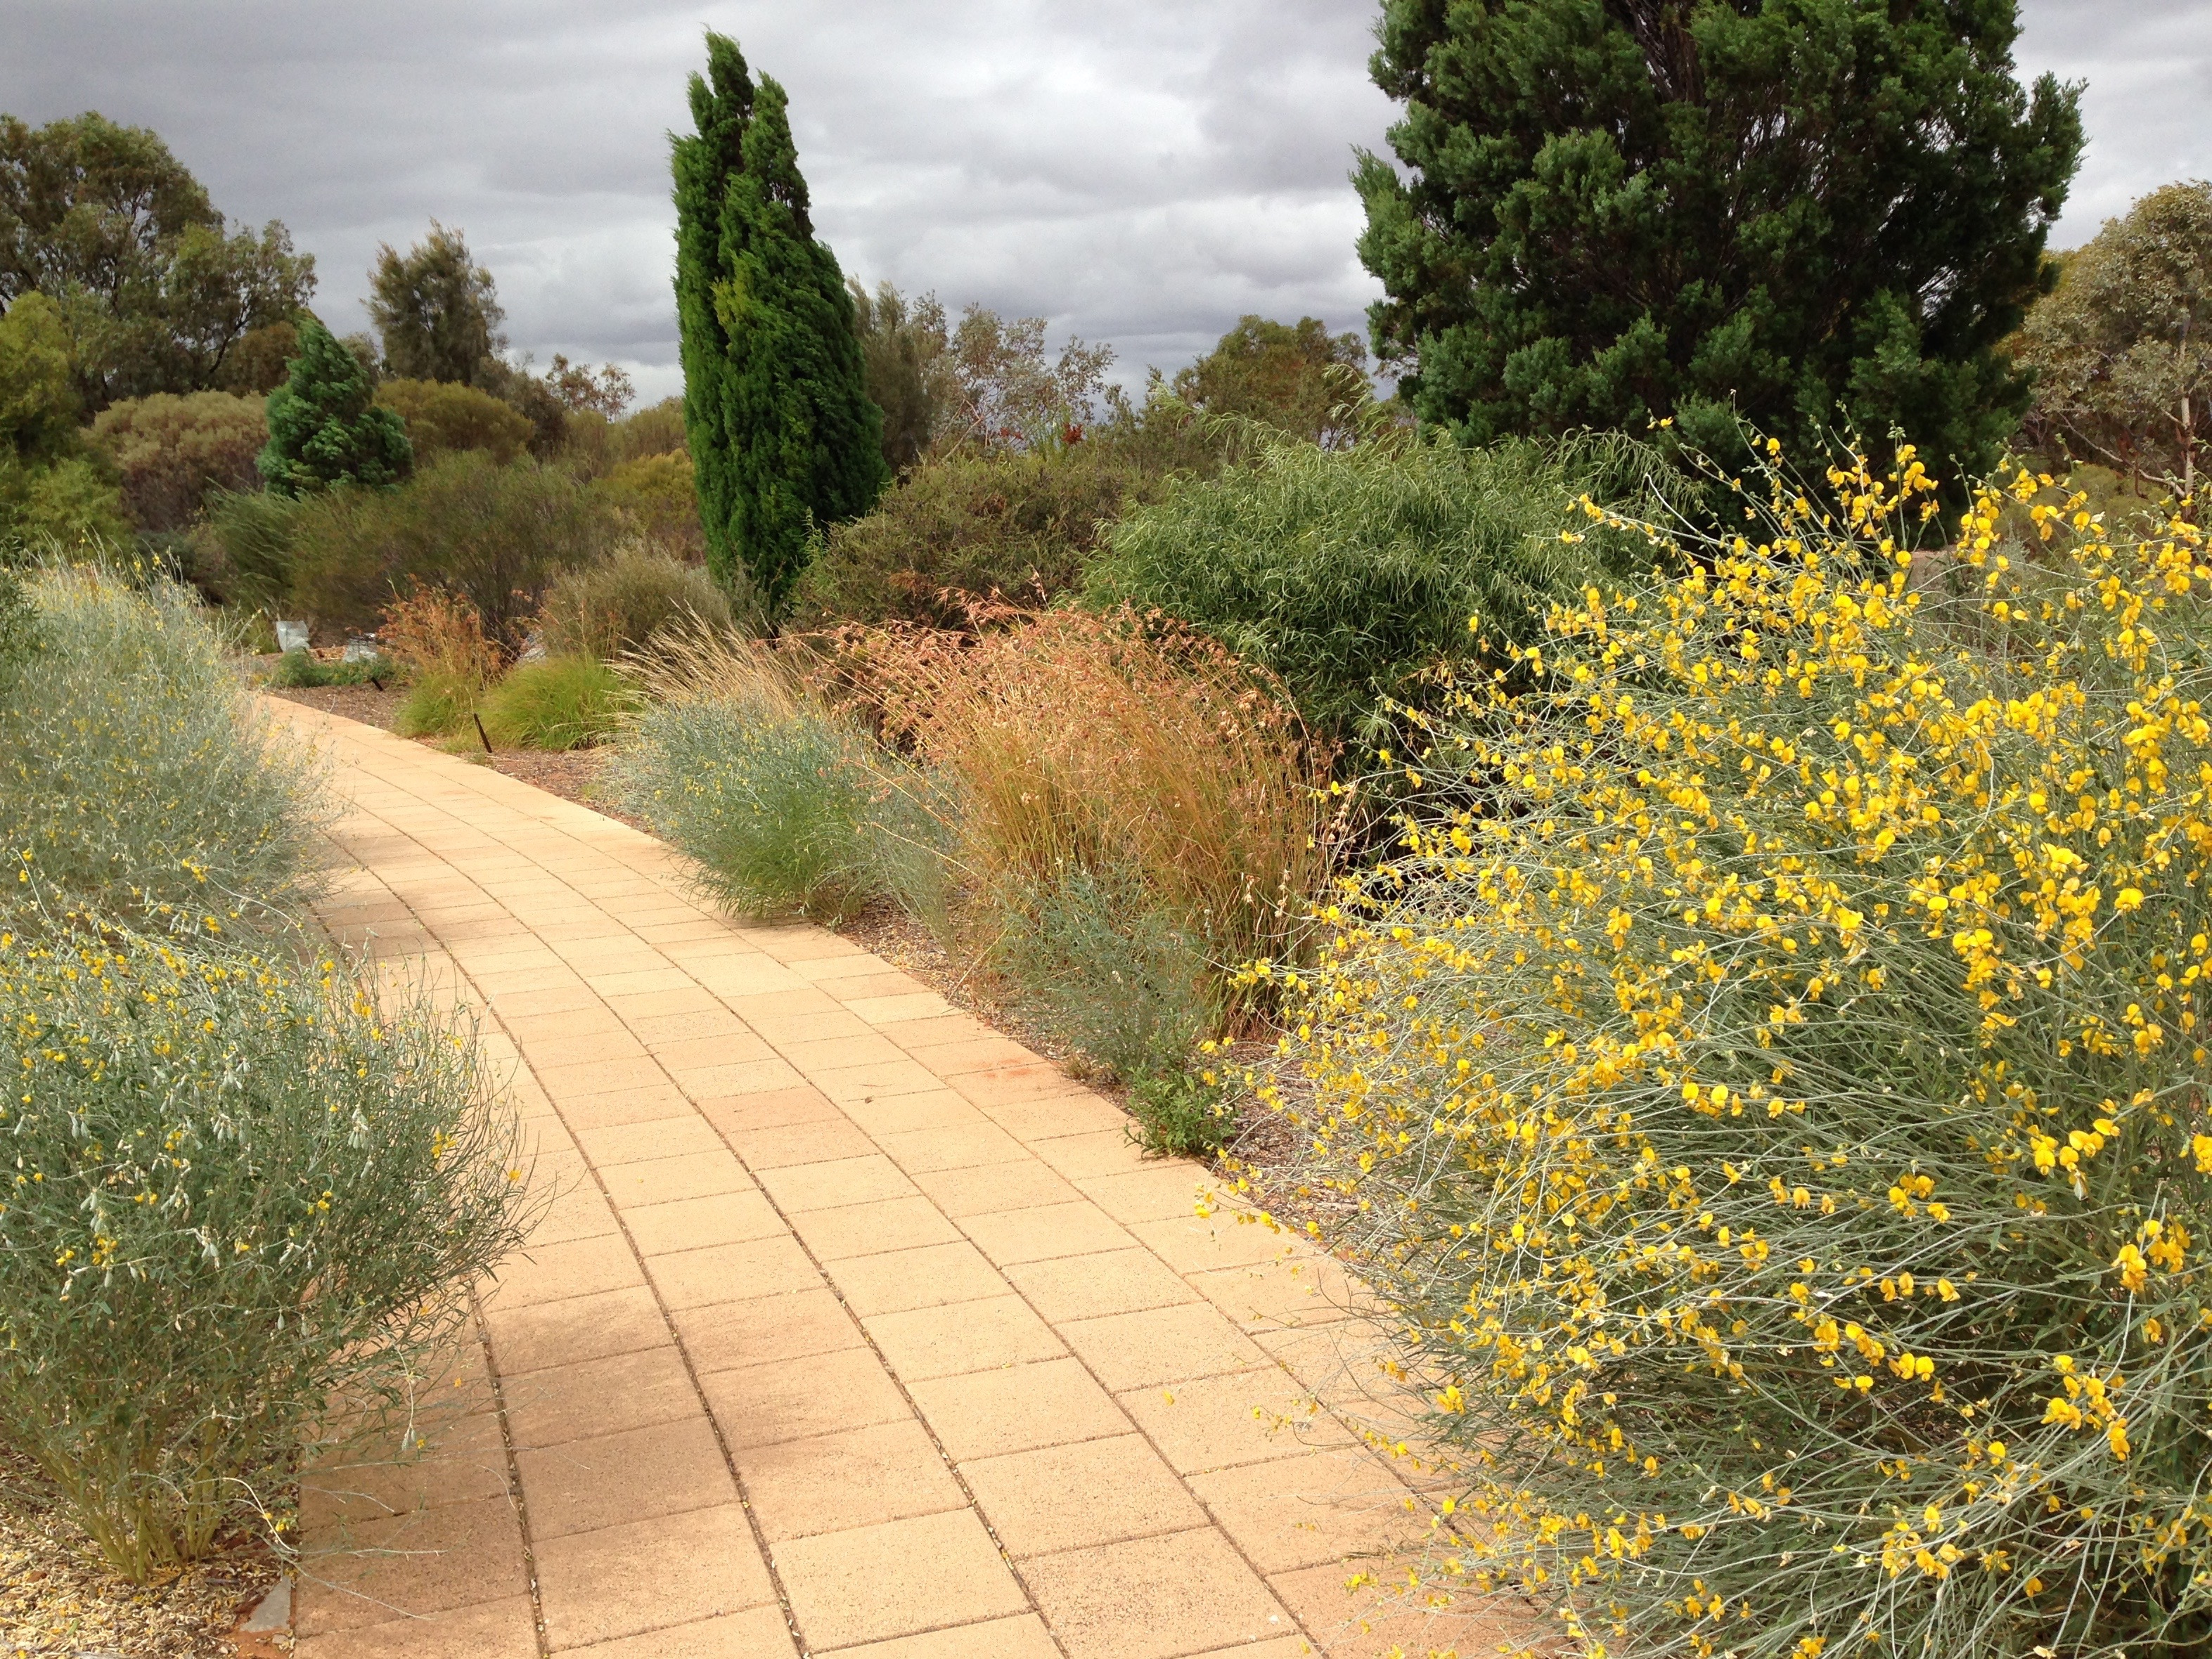 Arid lands botanic garden janna schreier garden design for Arid garden design 7 little words